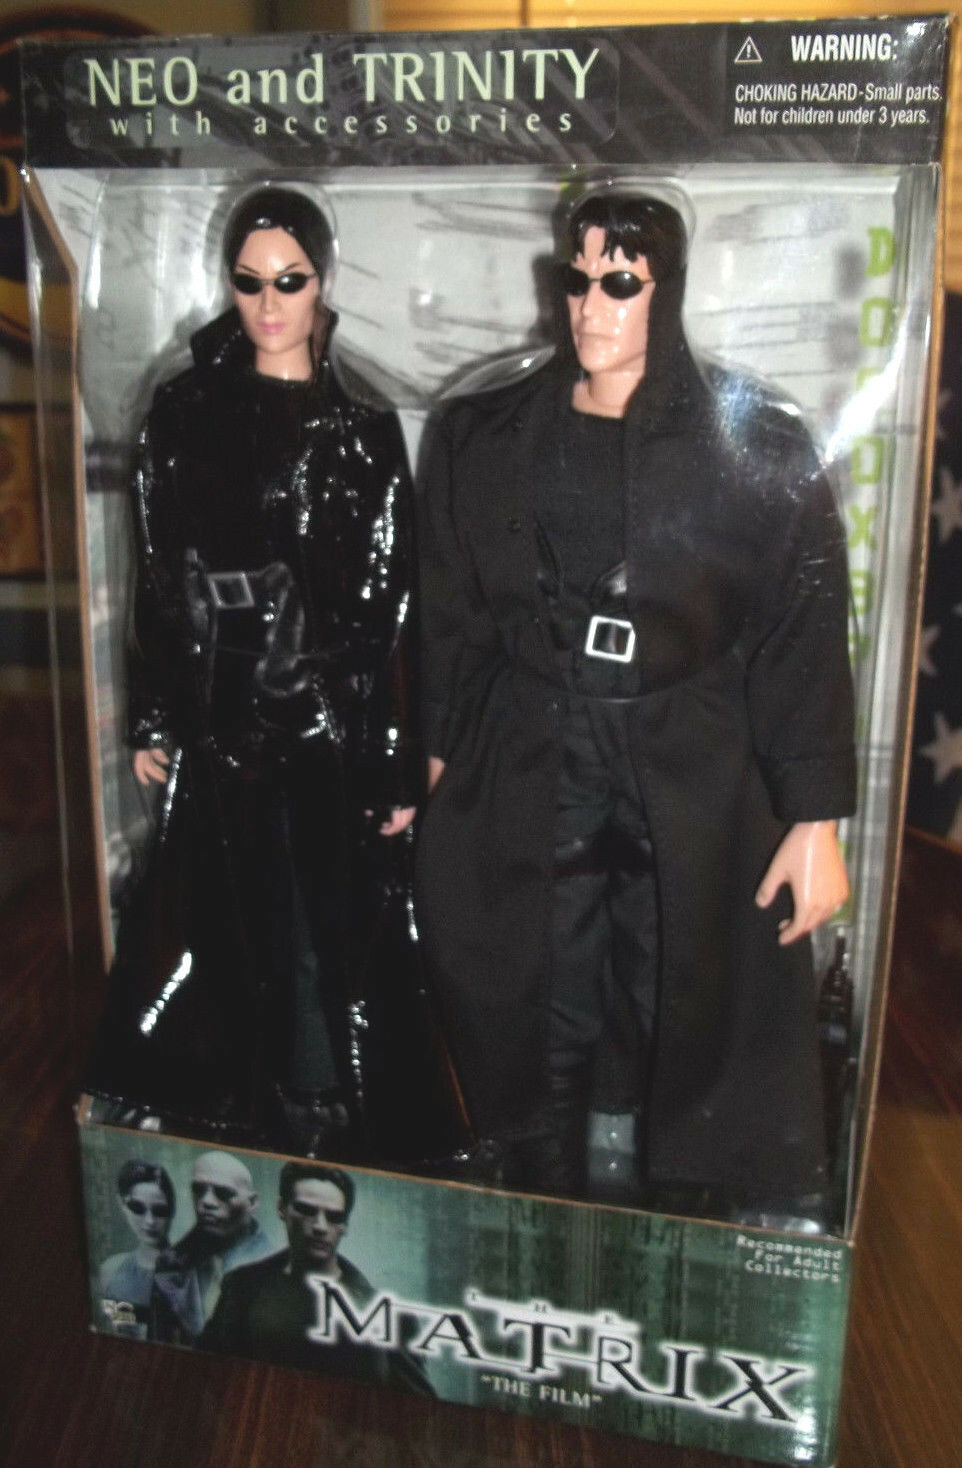 NEO and TRINITY with accessories  (N2TOYS)